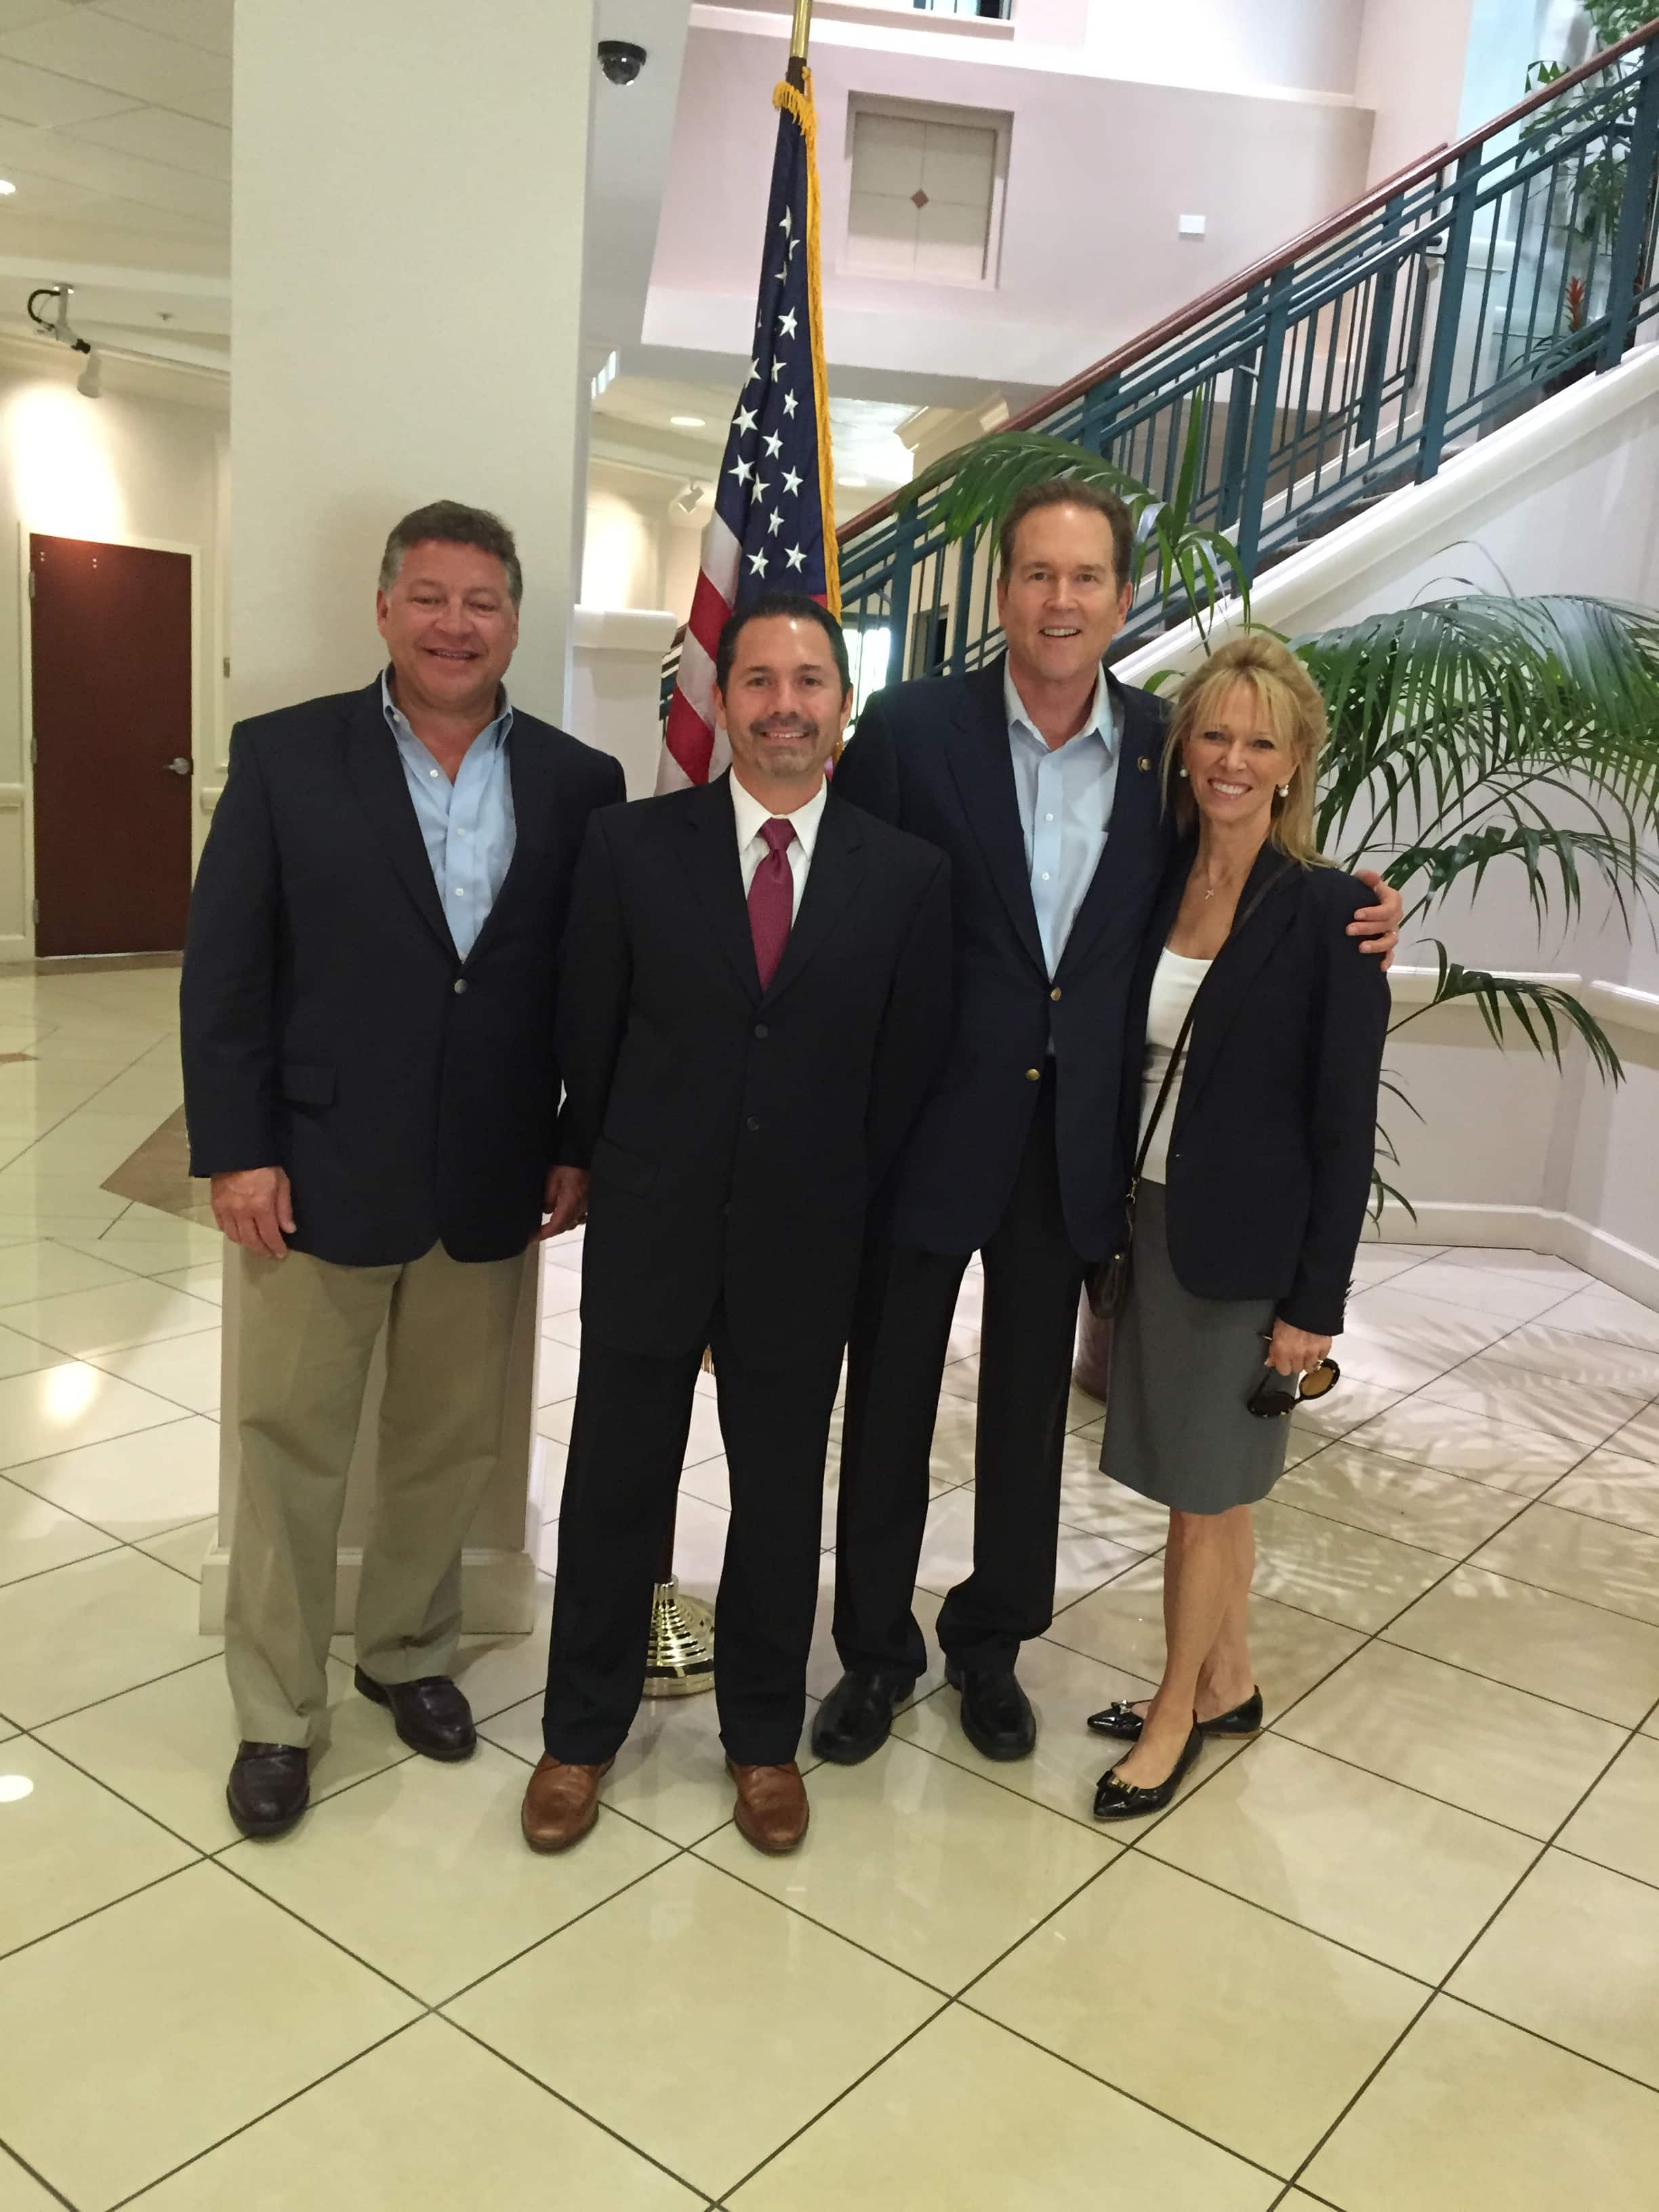 Public Statekholder Meeting on Transportation and Logistics Held at the Sarasota Campus